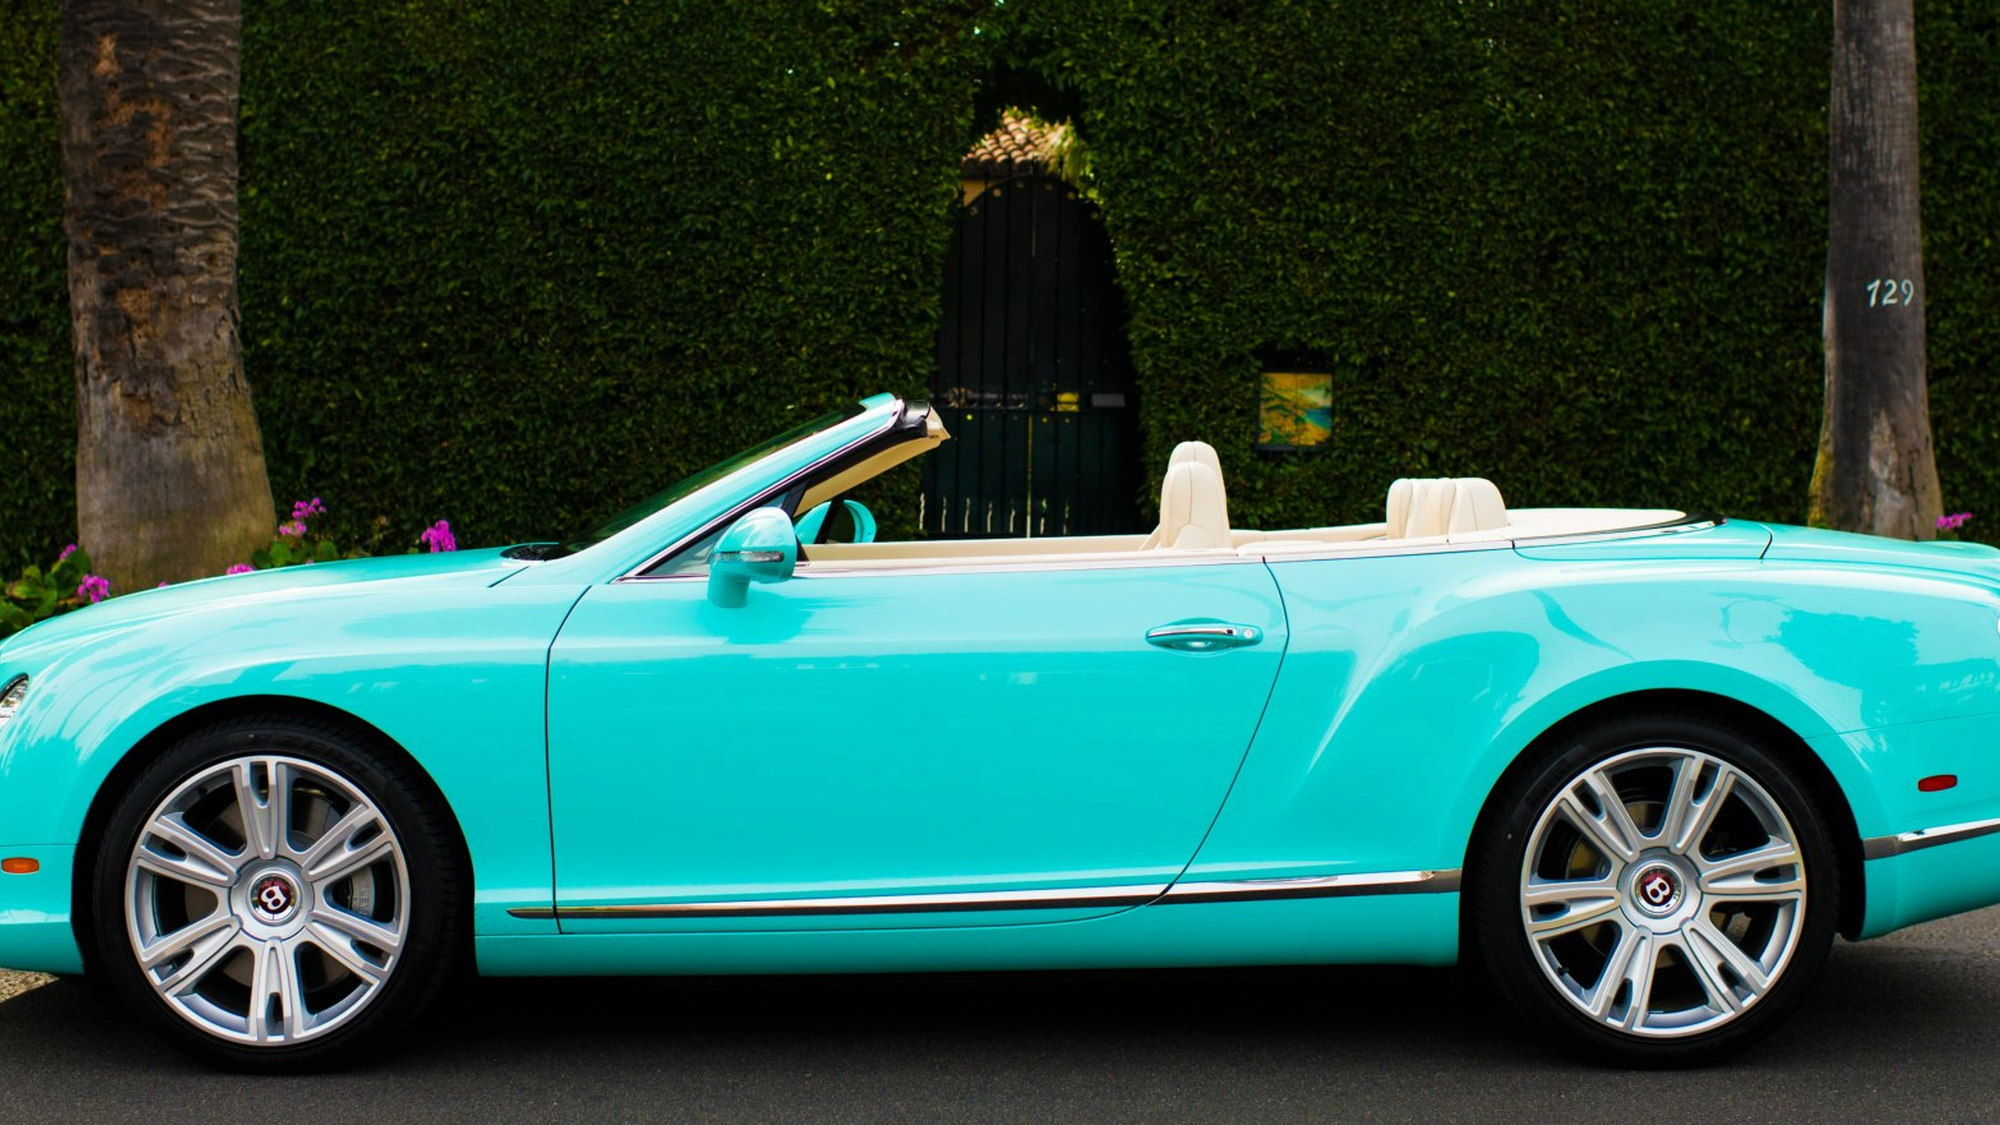 The Tiffany-inspired Bentley Continental GTC V8 - image: O'Gara Coach Company